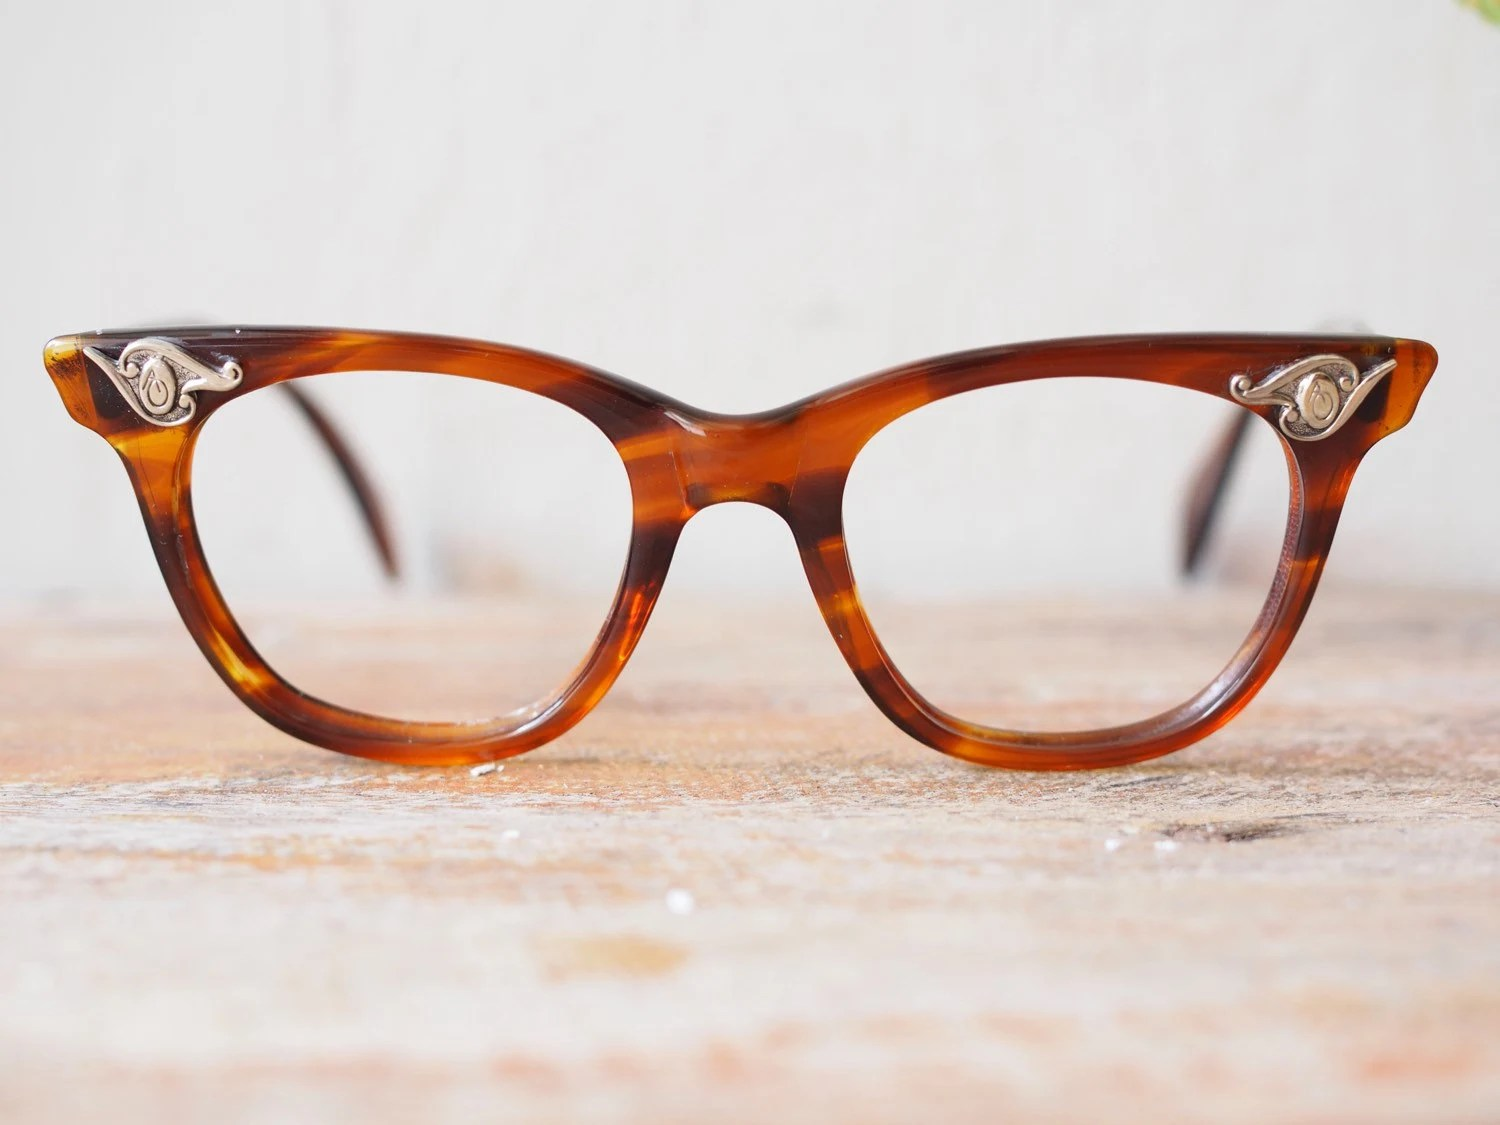 Vintage American Optical Eyeglasses 1950 s Tortoise Shell ...